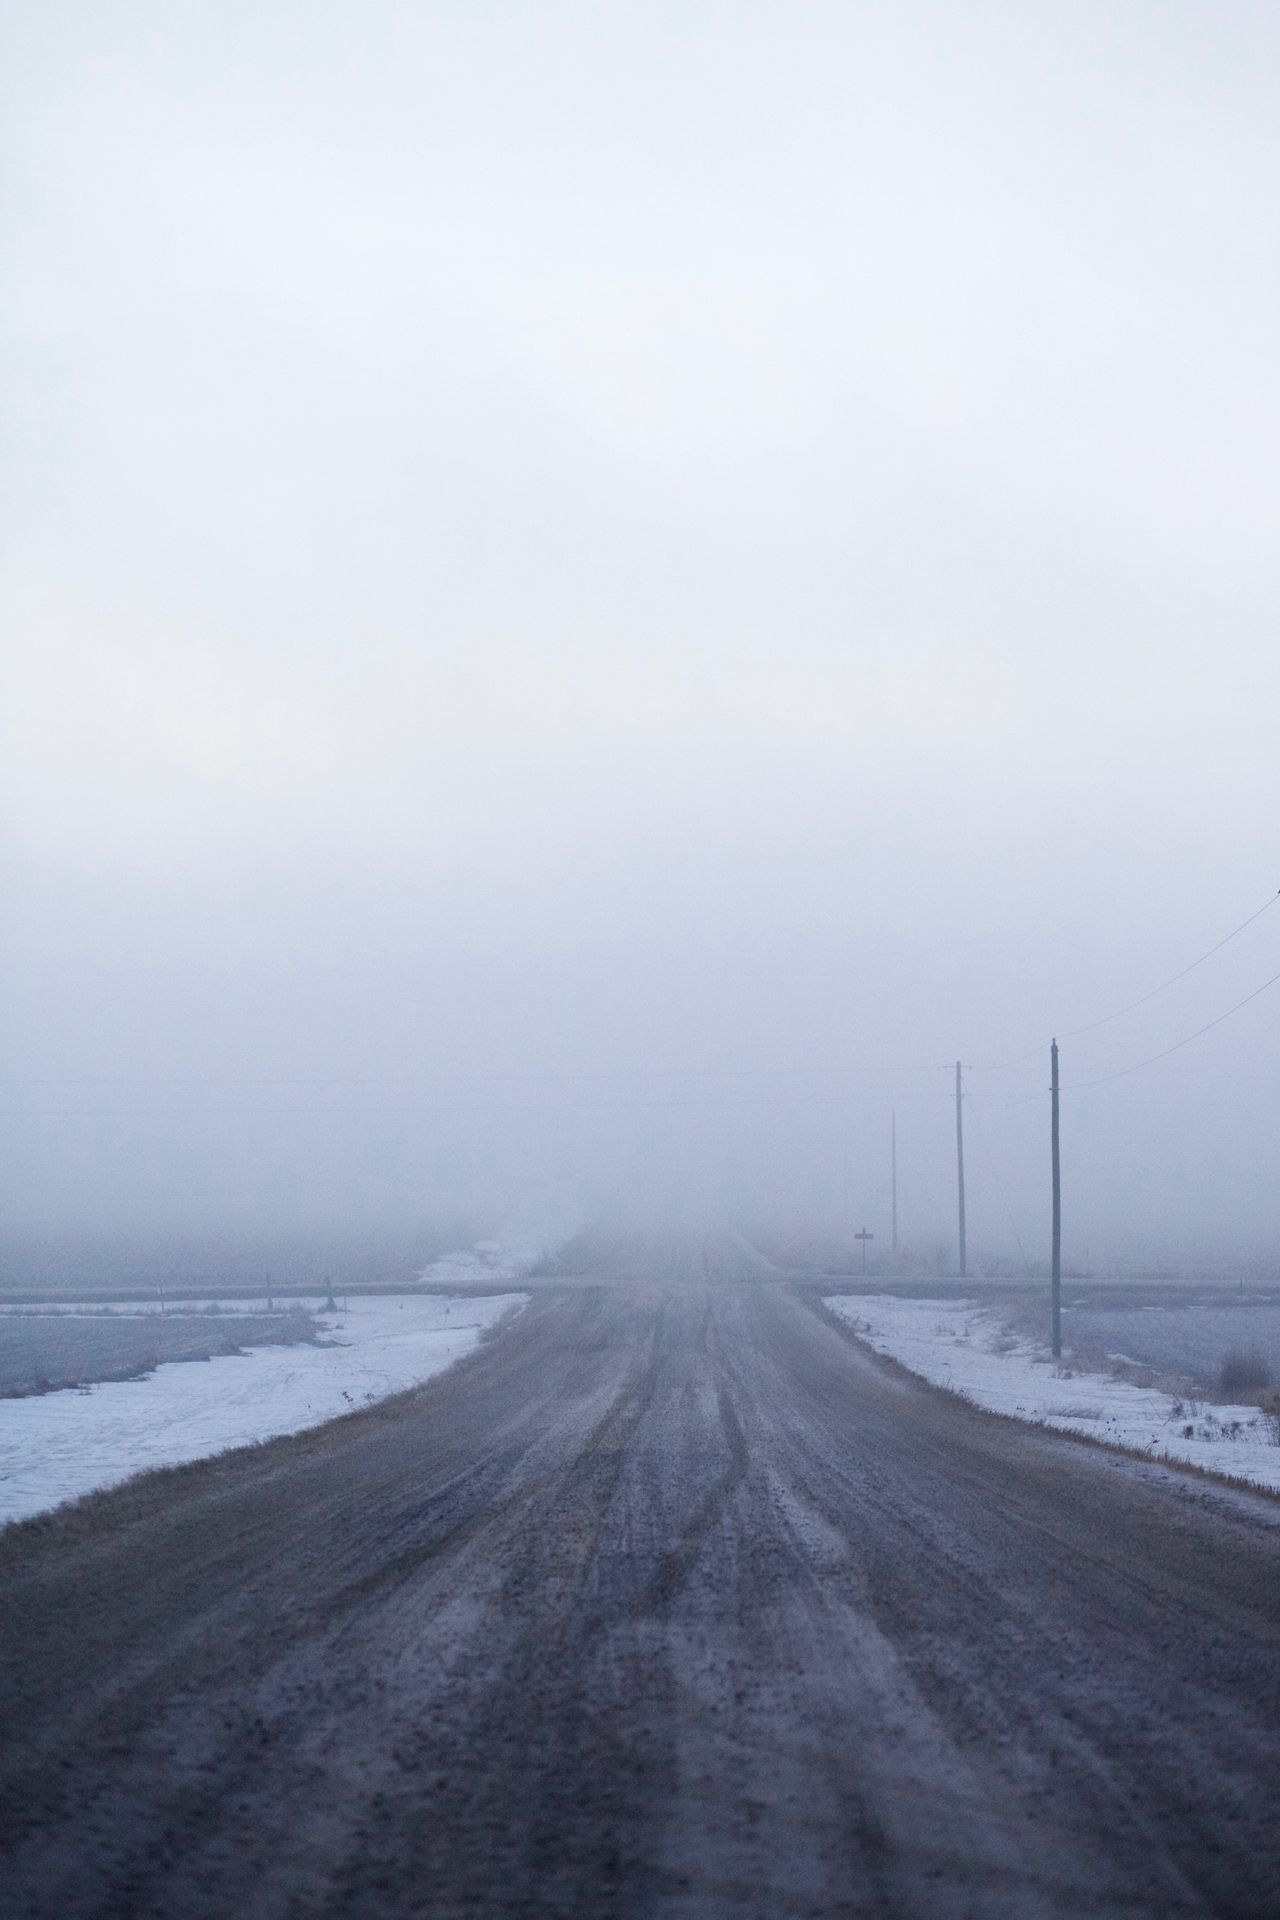 Dawn Diminishing Perspective Fog Mist Morning Nature Remote Road Rural Season  Snow Vanishing Point Weather